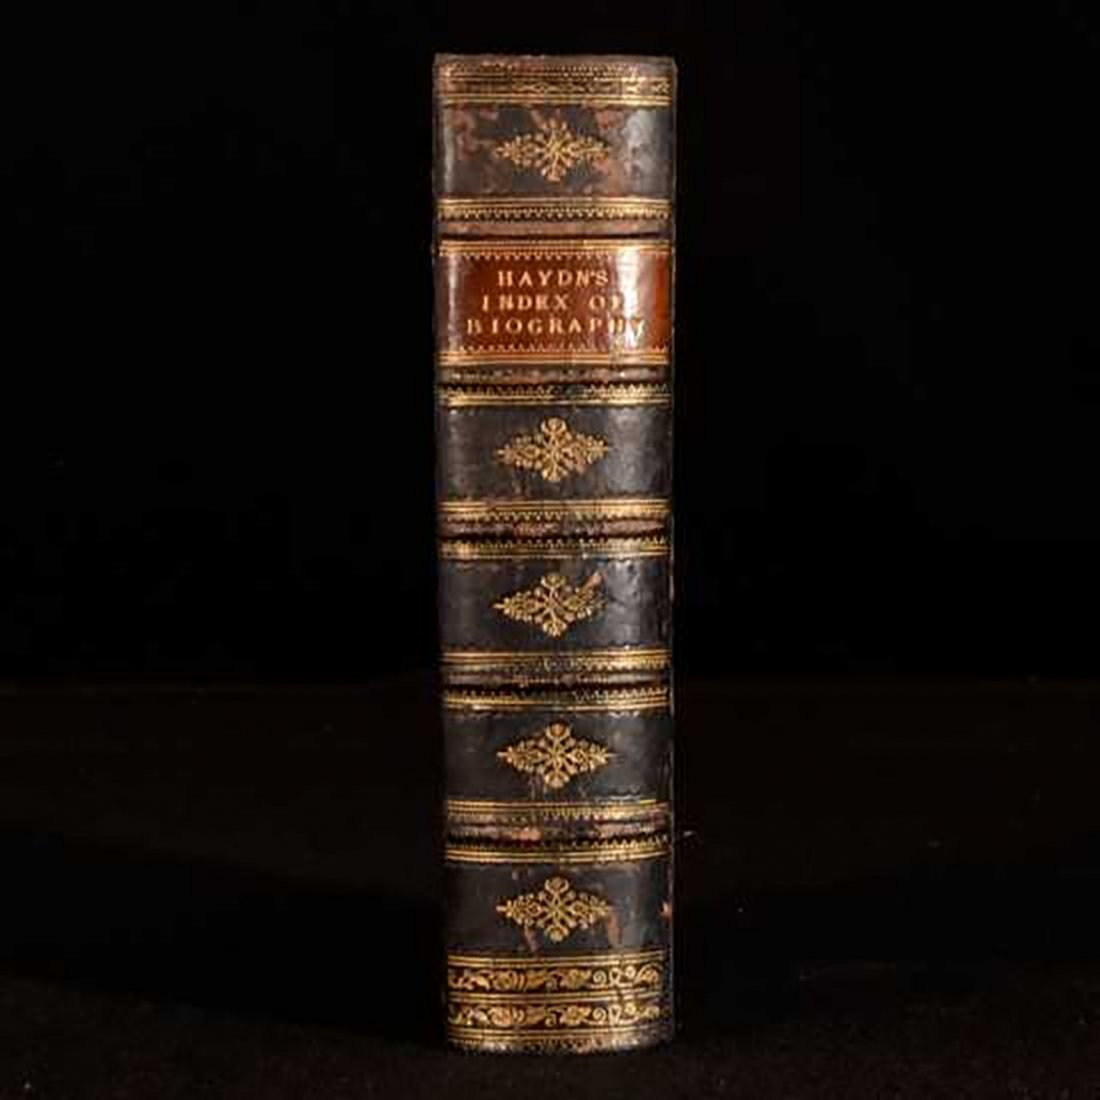 Rare 1770 Edition of the Works of Roman Lyric Poem